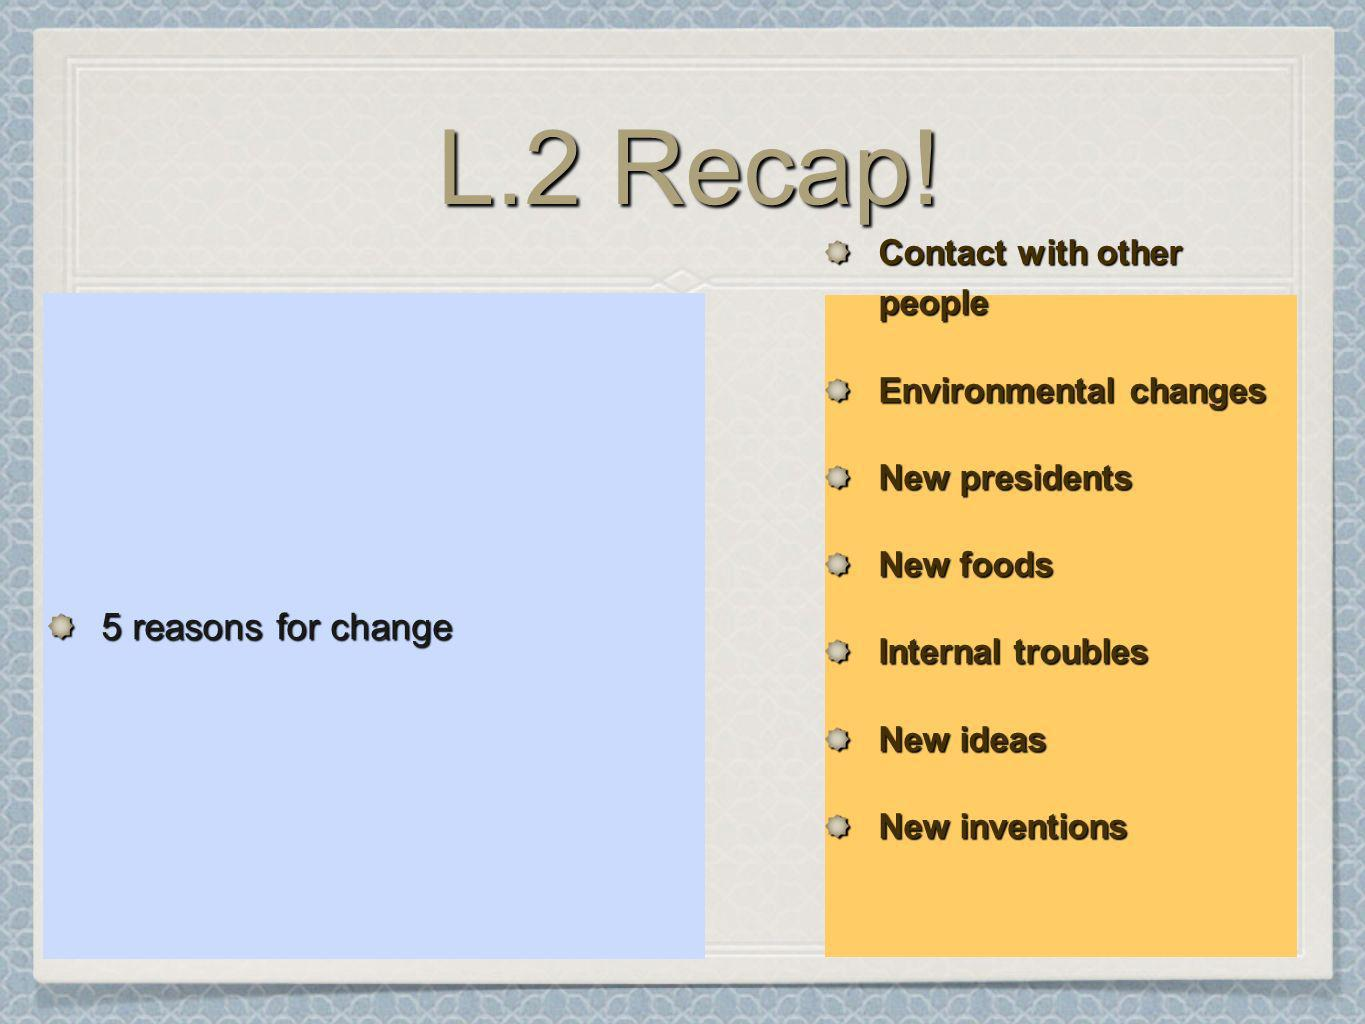 L.2 Recap! 5 reasons for change Contact with other people Environmental changes New presidents New foods Internal troubles New ideas New inventions